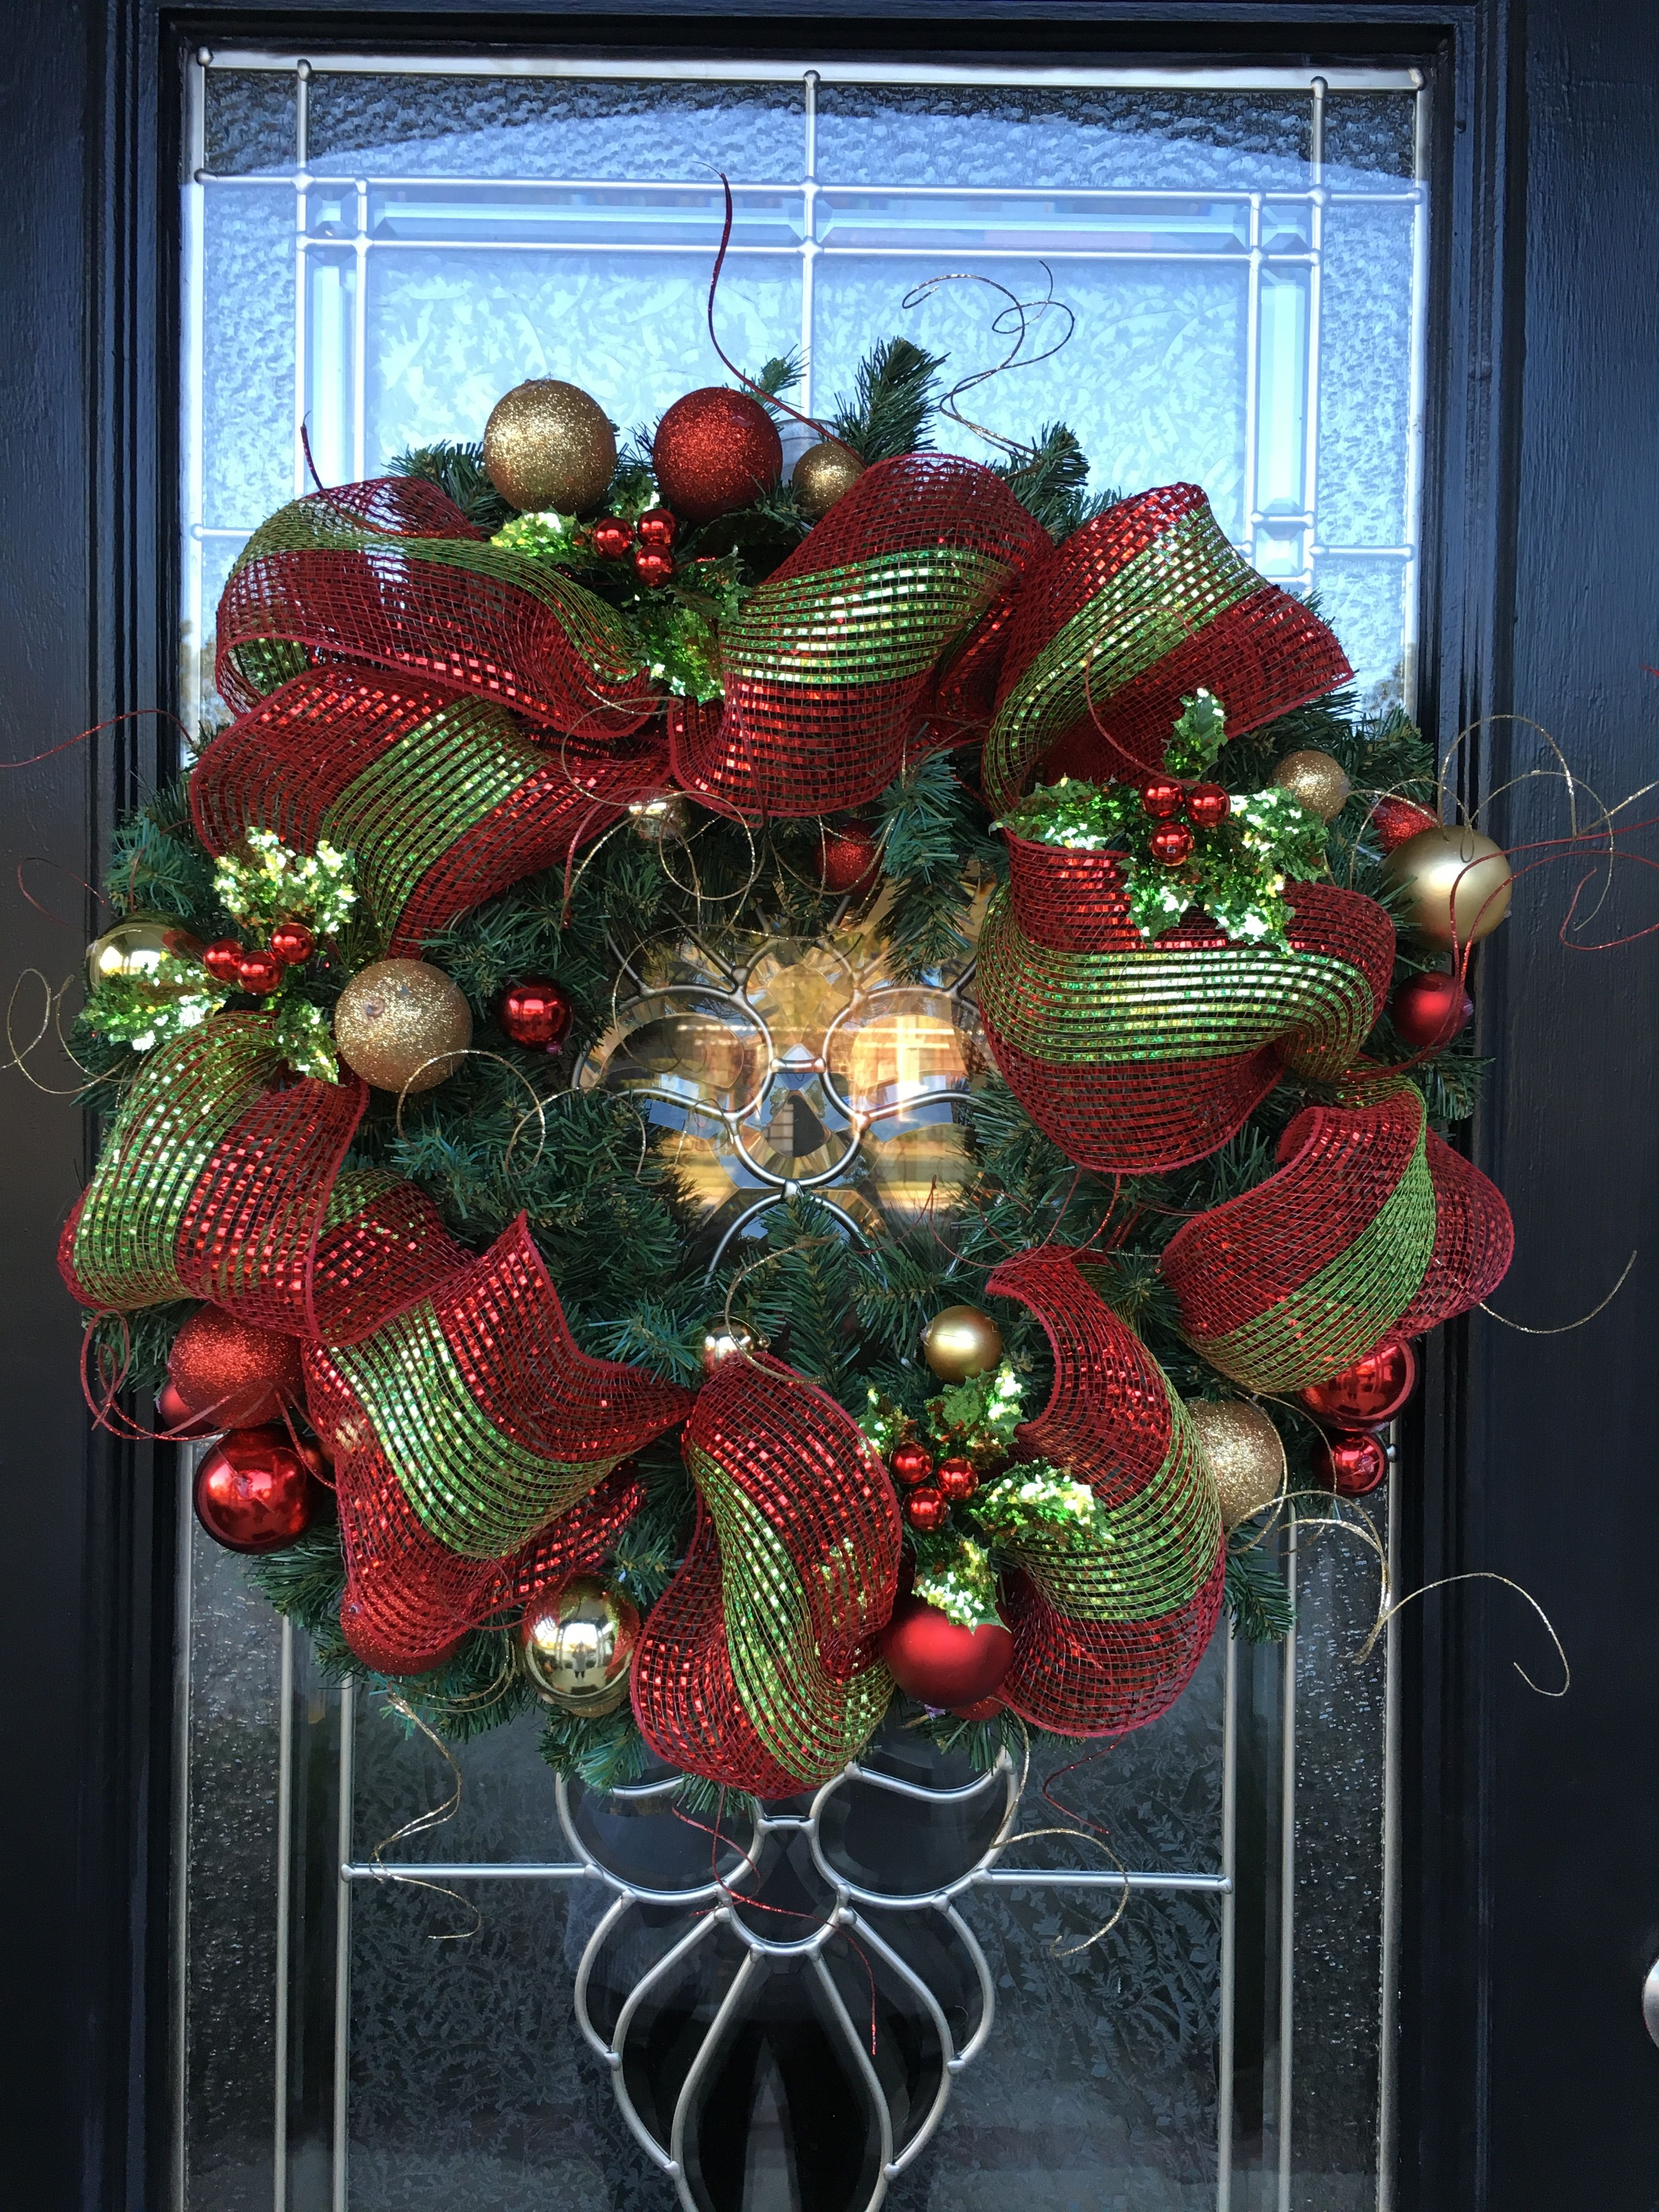 Christmas Holiday Wreath I Made From Hobby Lobby Supplies Wreath